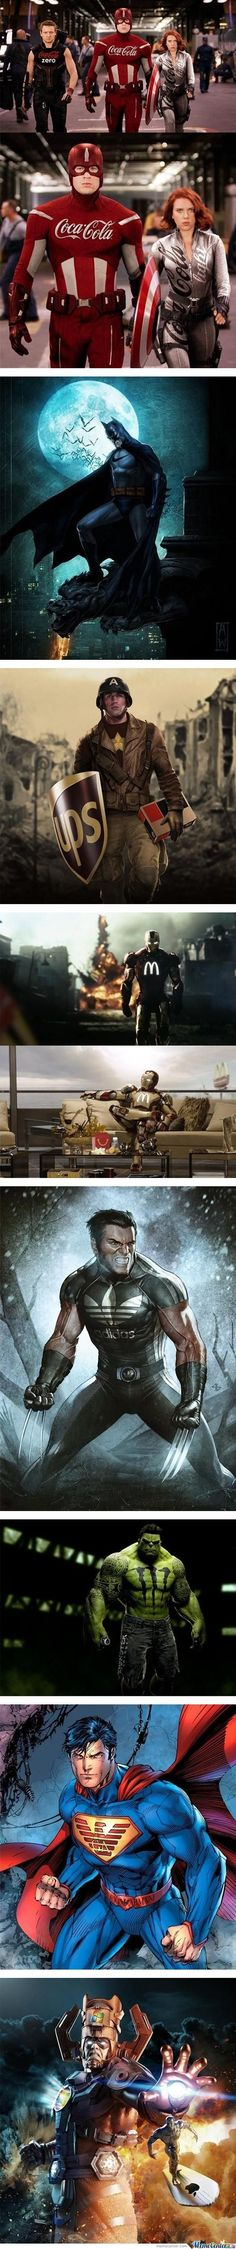 If Superheroes Had Sponsors - Awesome